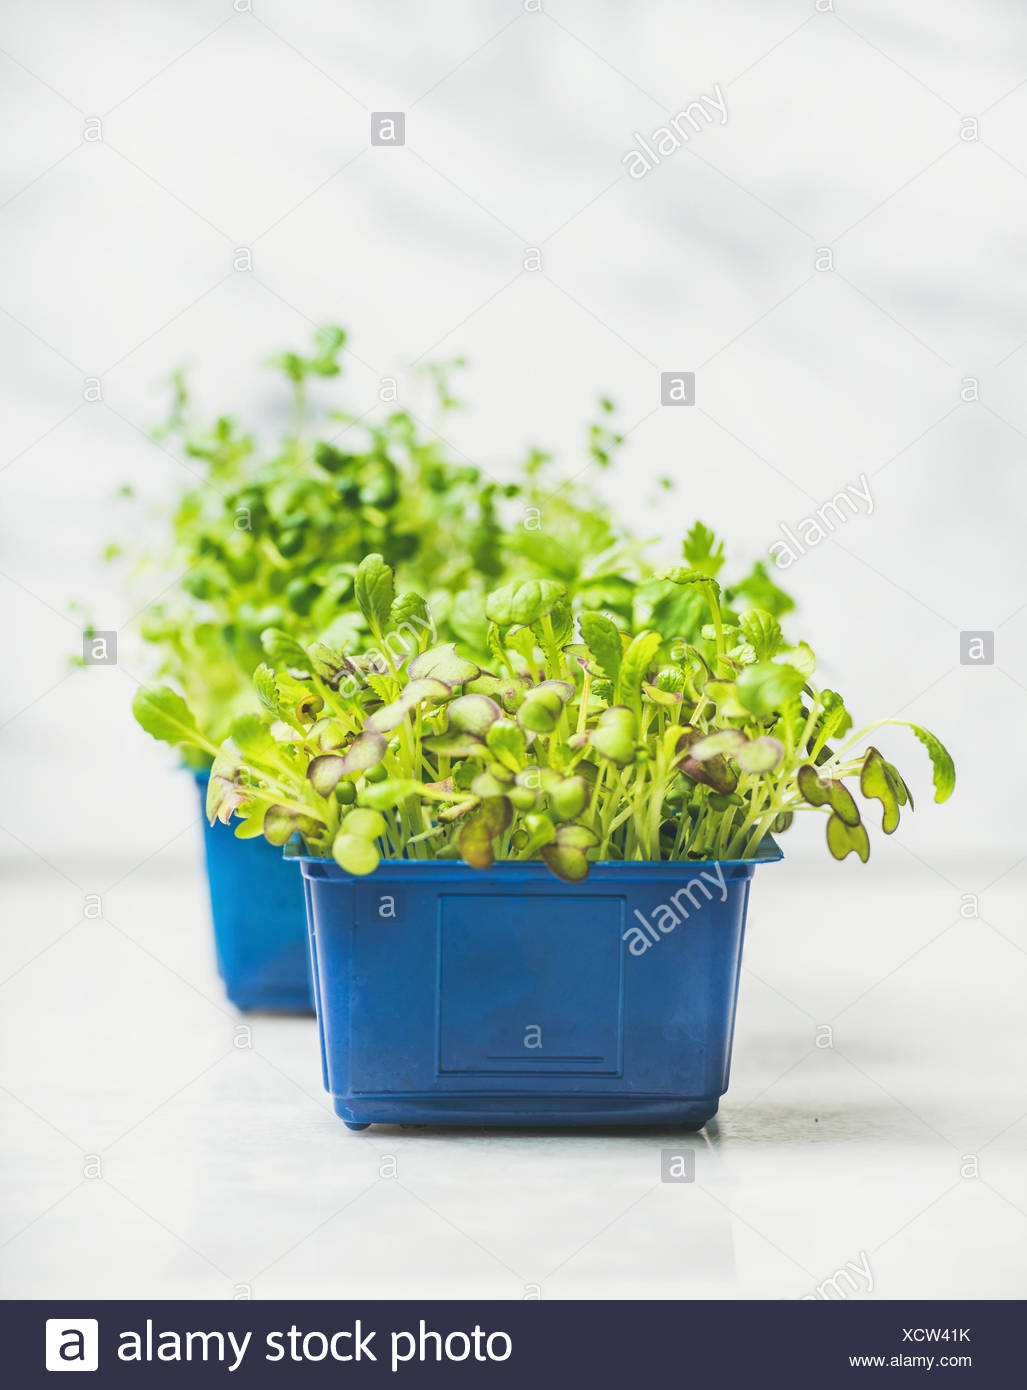 Fresh spring green live radish cress sprouts in blue plastic pots over white marble background for healthy eating, selective focus, copy space. Clean - Stock Image